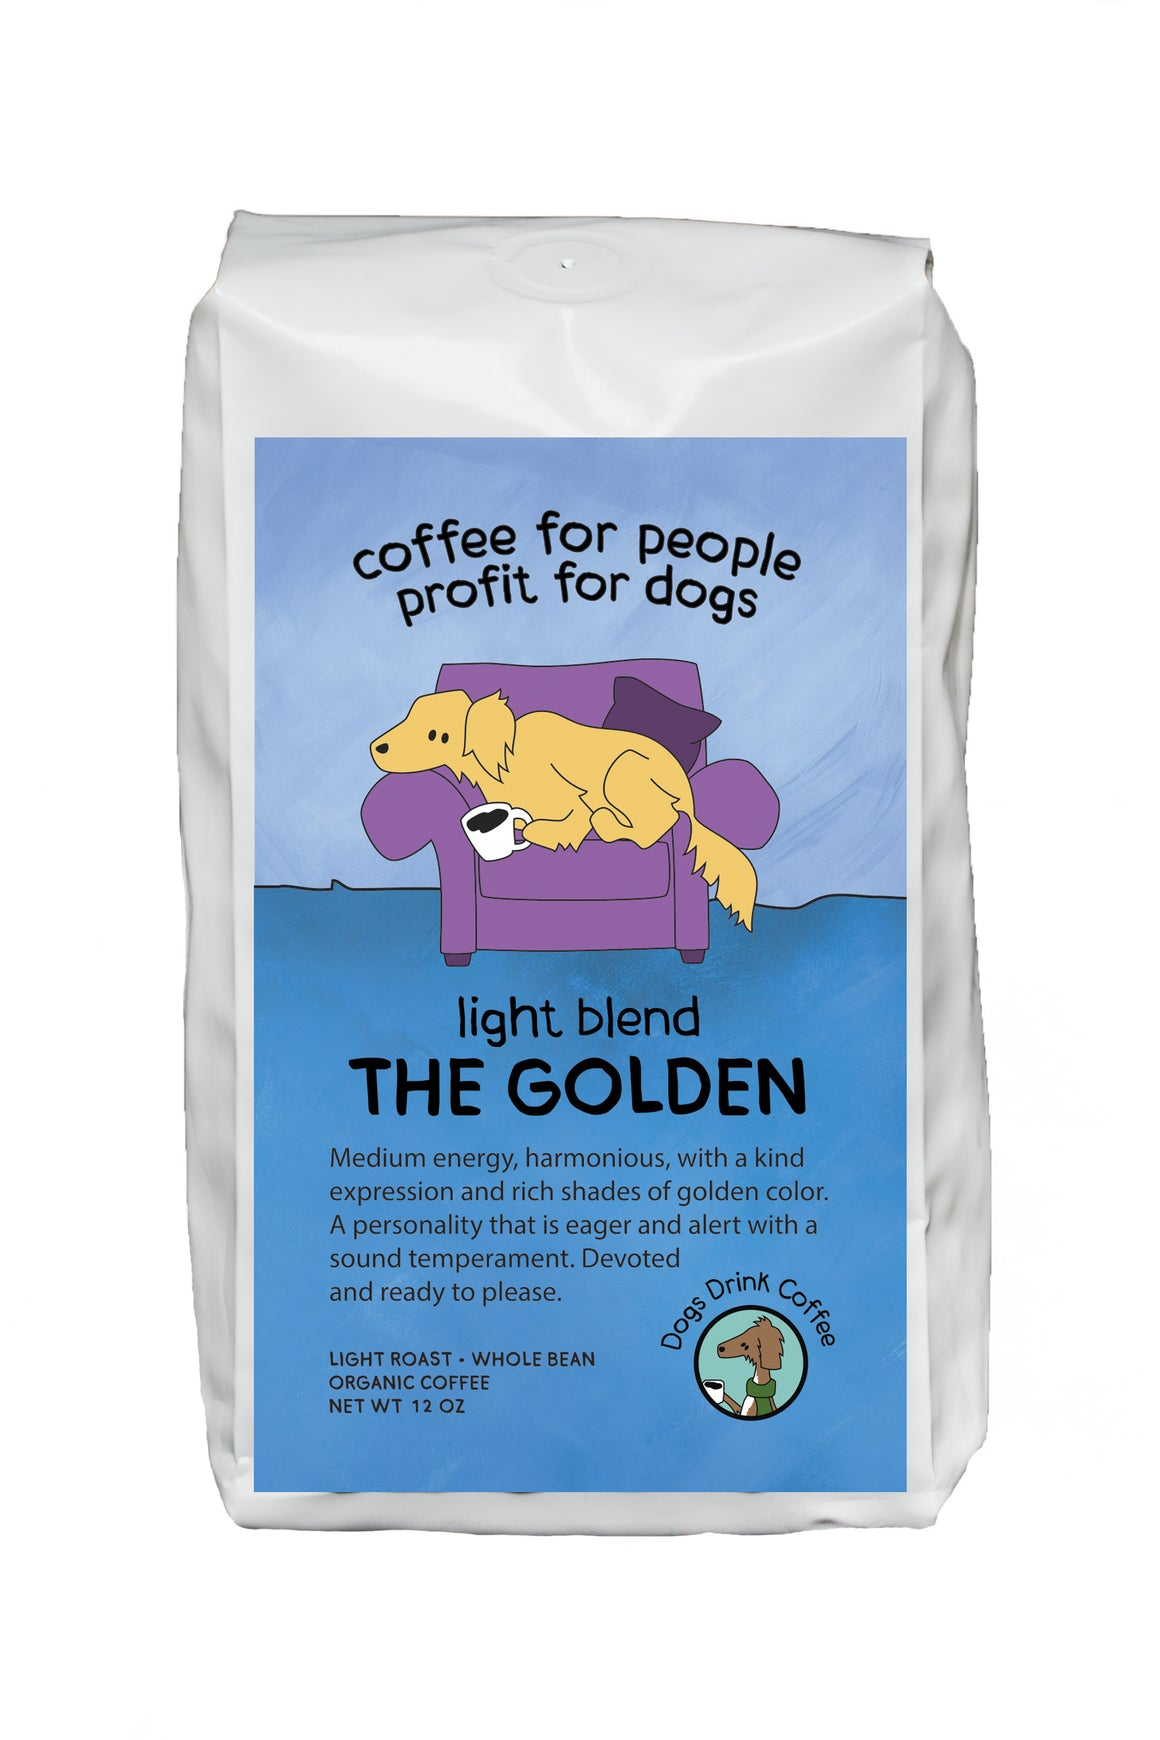 The Golden Light Blend